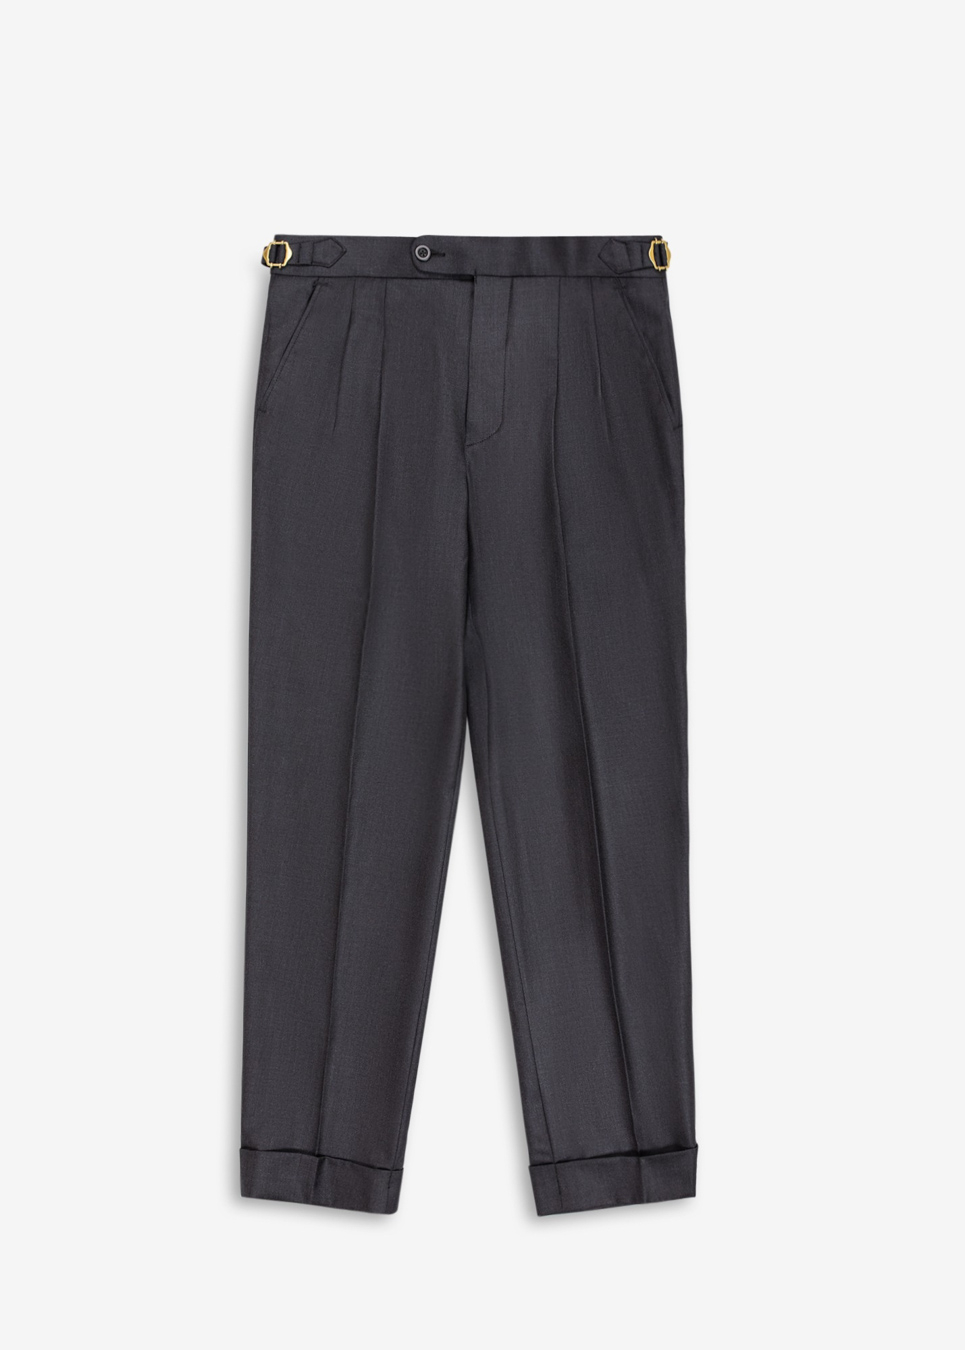 Rags And Lace Wool Pants (Coal)